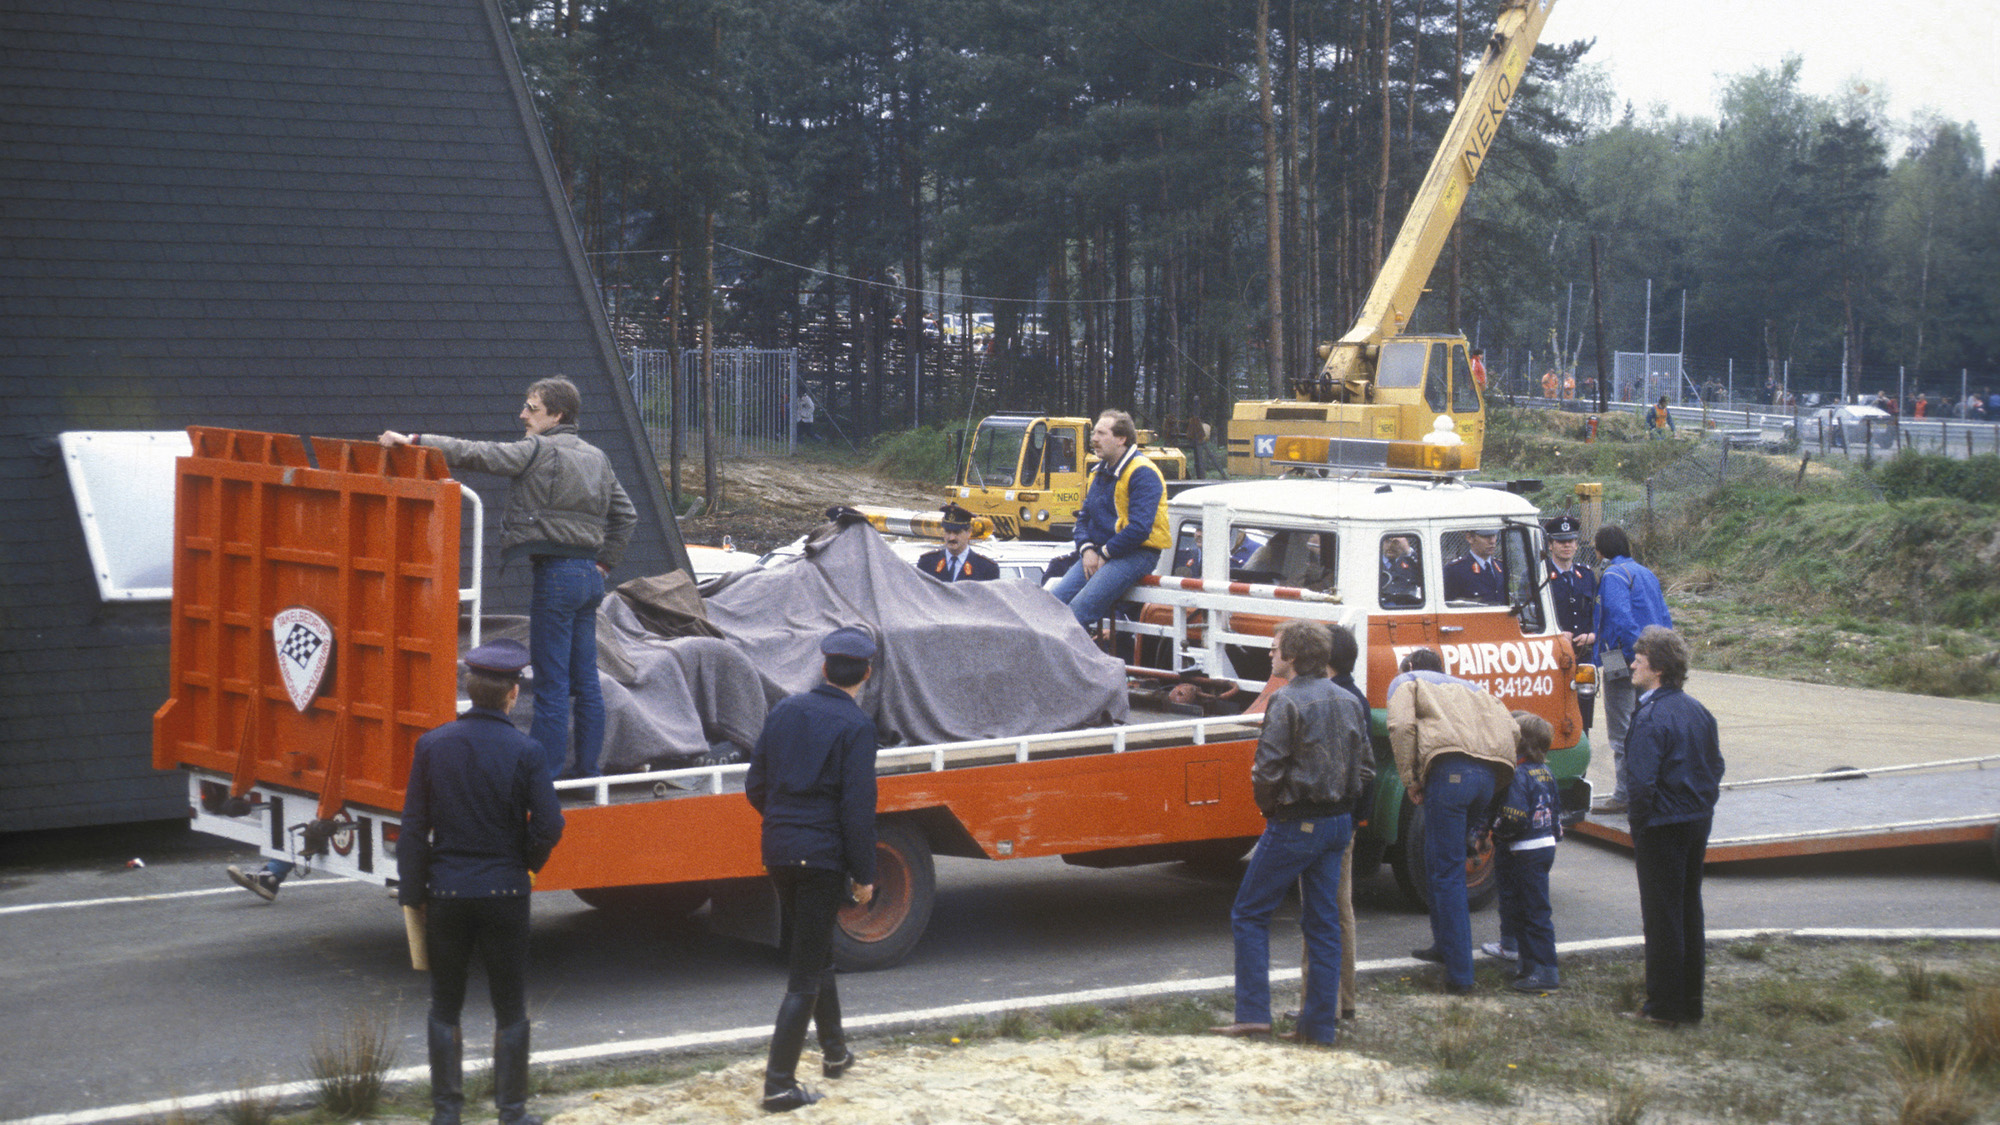 Gilles Villeneuves wrecked Ferrari is removed from the Zolder circuit in 1982